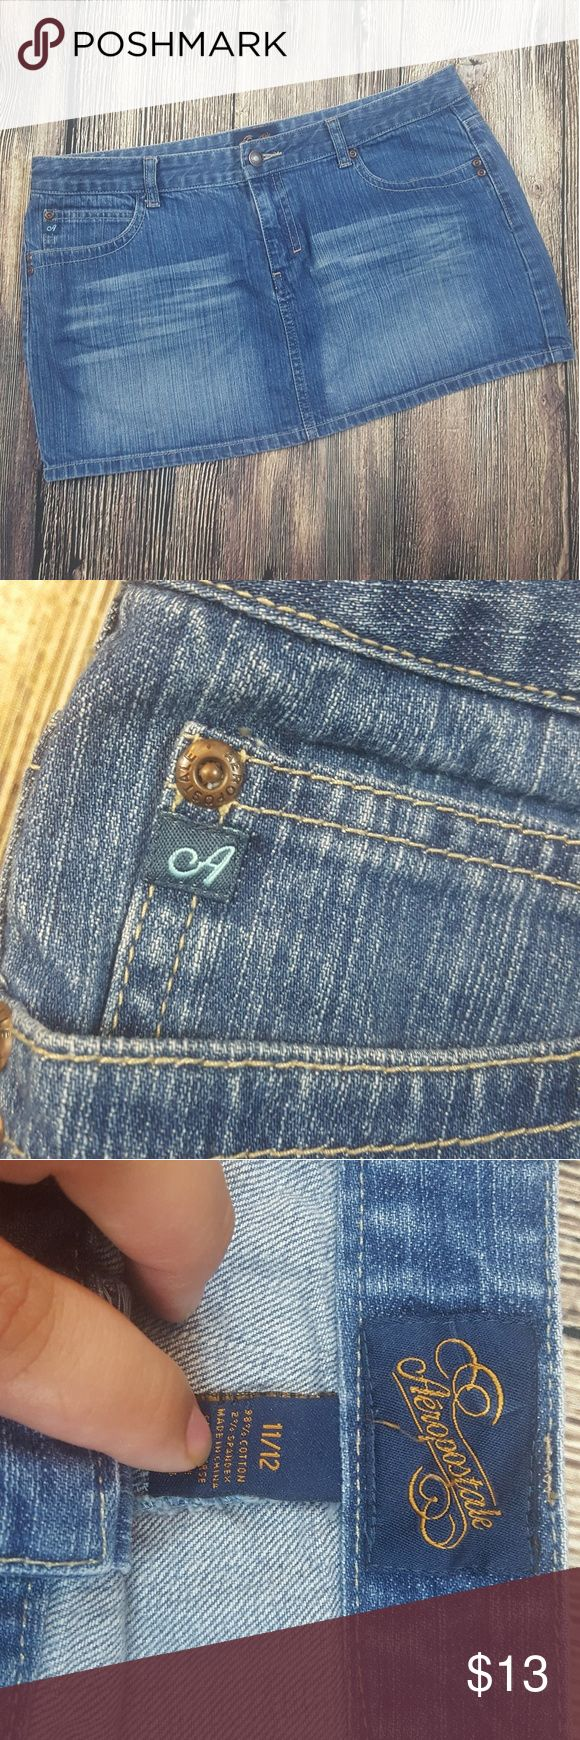 Aeropostale Jean skirt In like New condition . Measurements on pictures Bundle to receive better deal FAST SHIPPING Aeropostale Skirts Mini